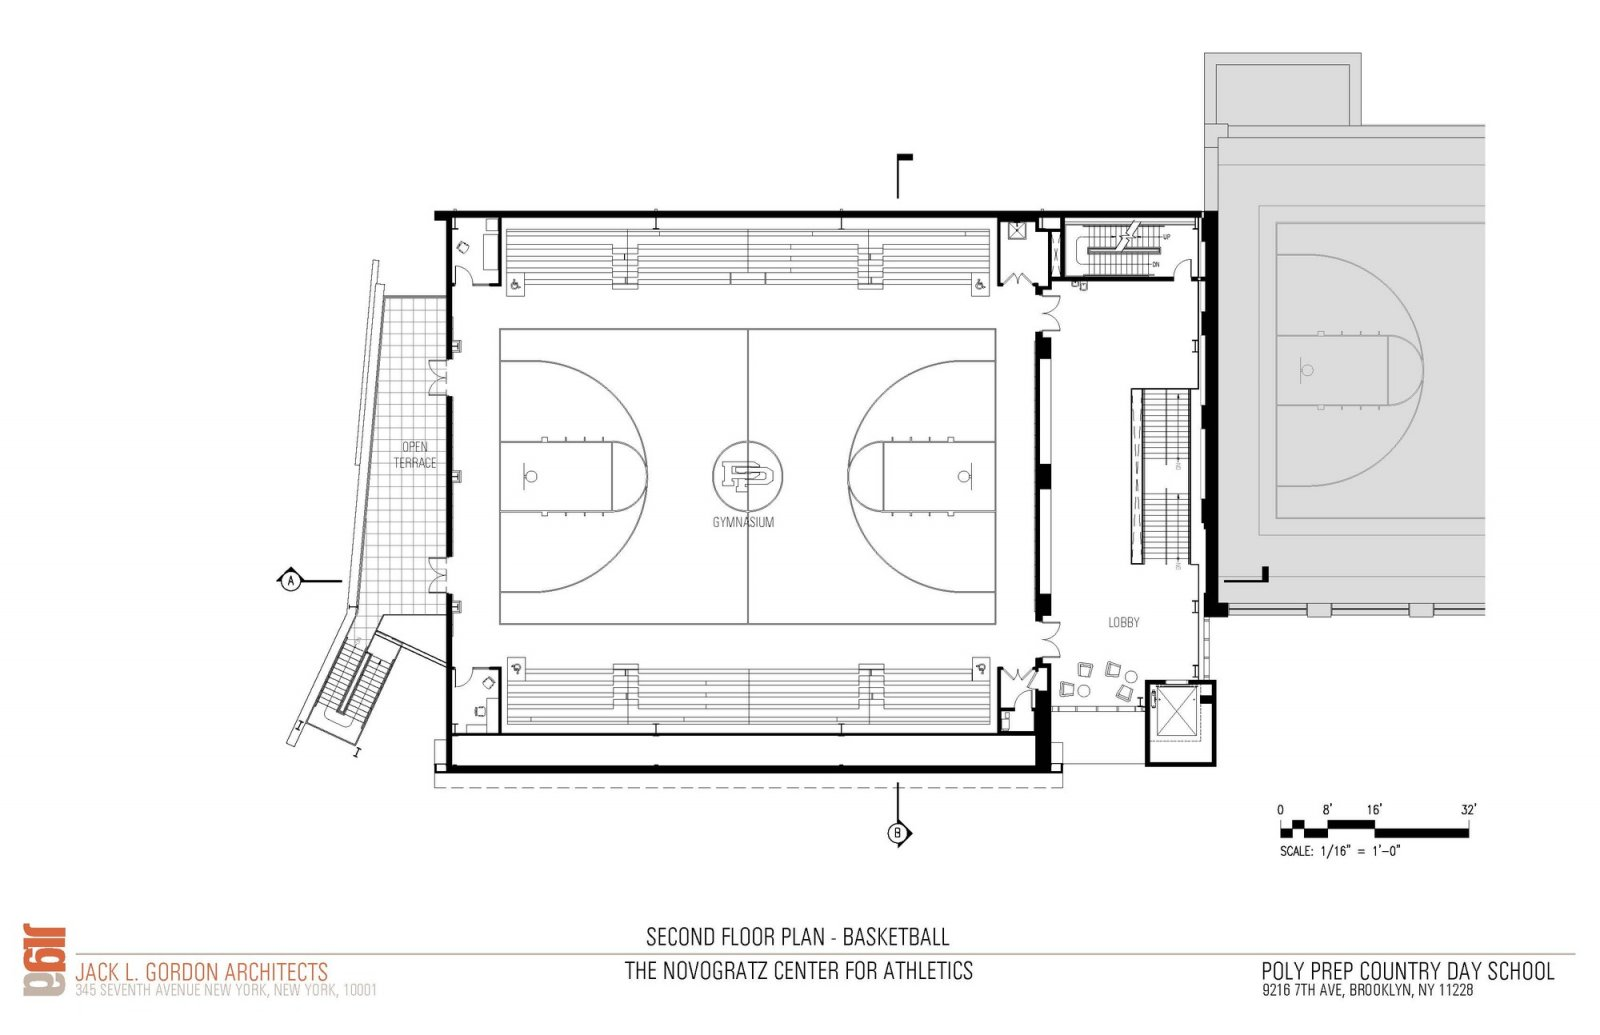 2nd Floor Plan Basketball